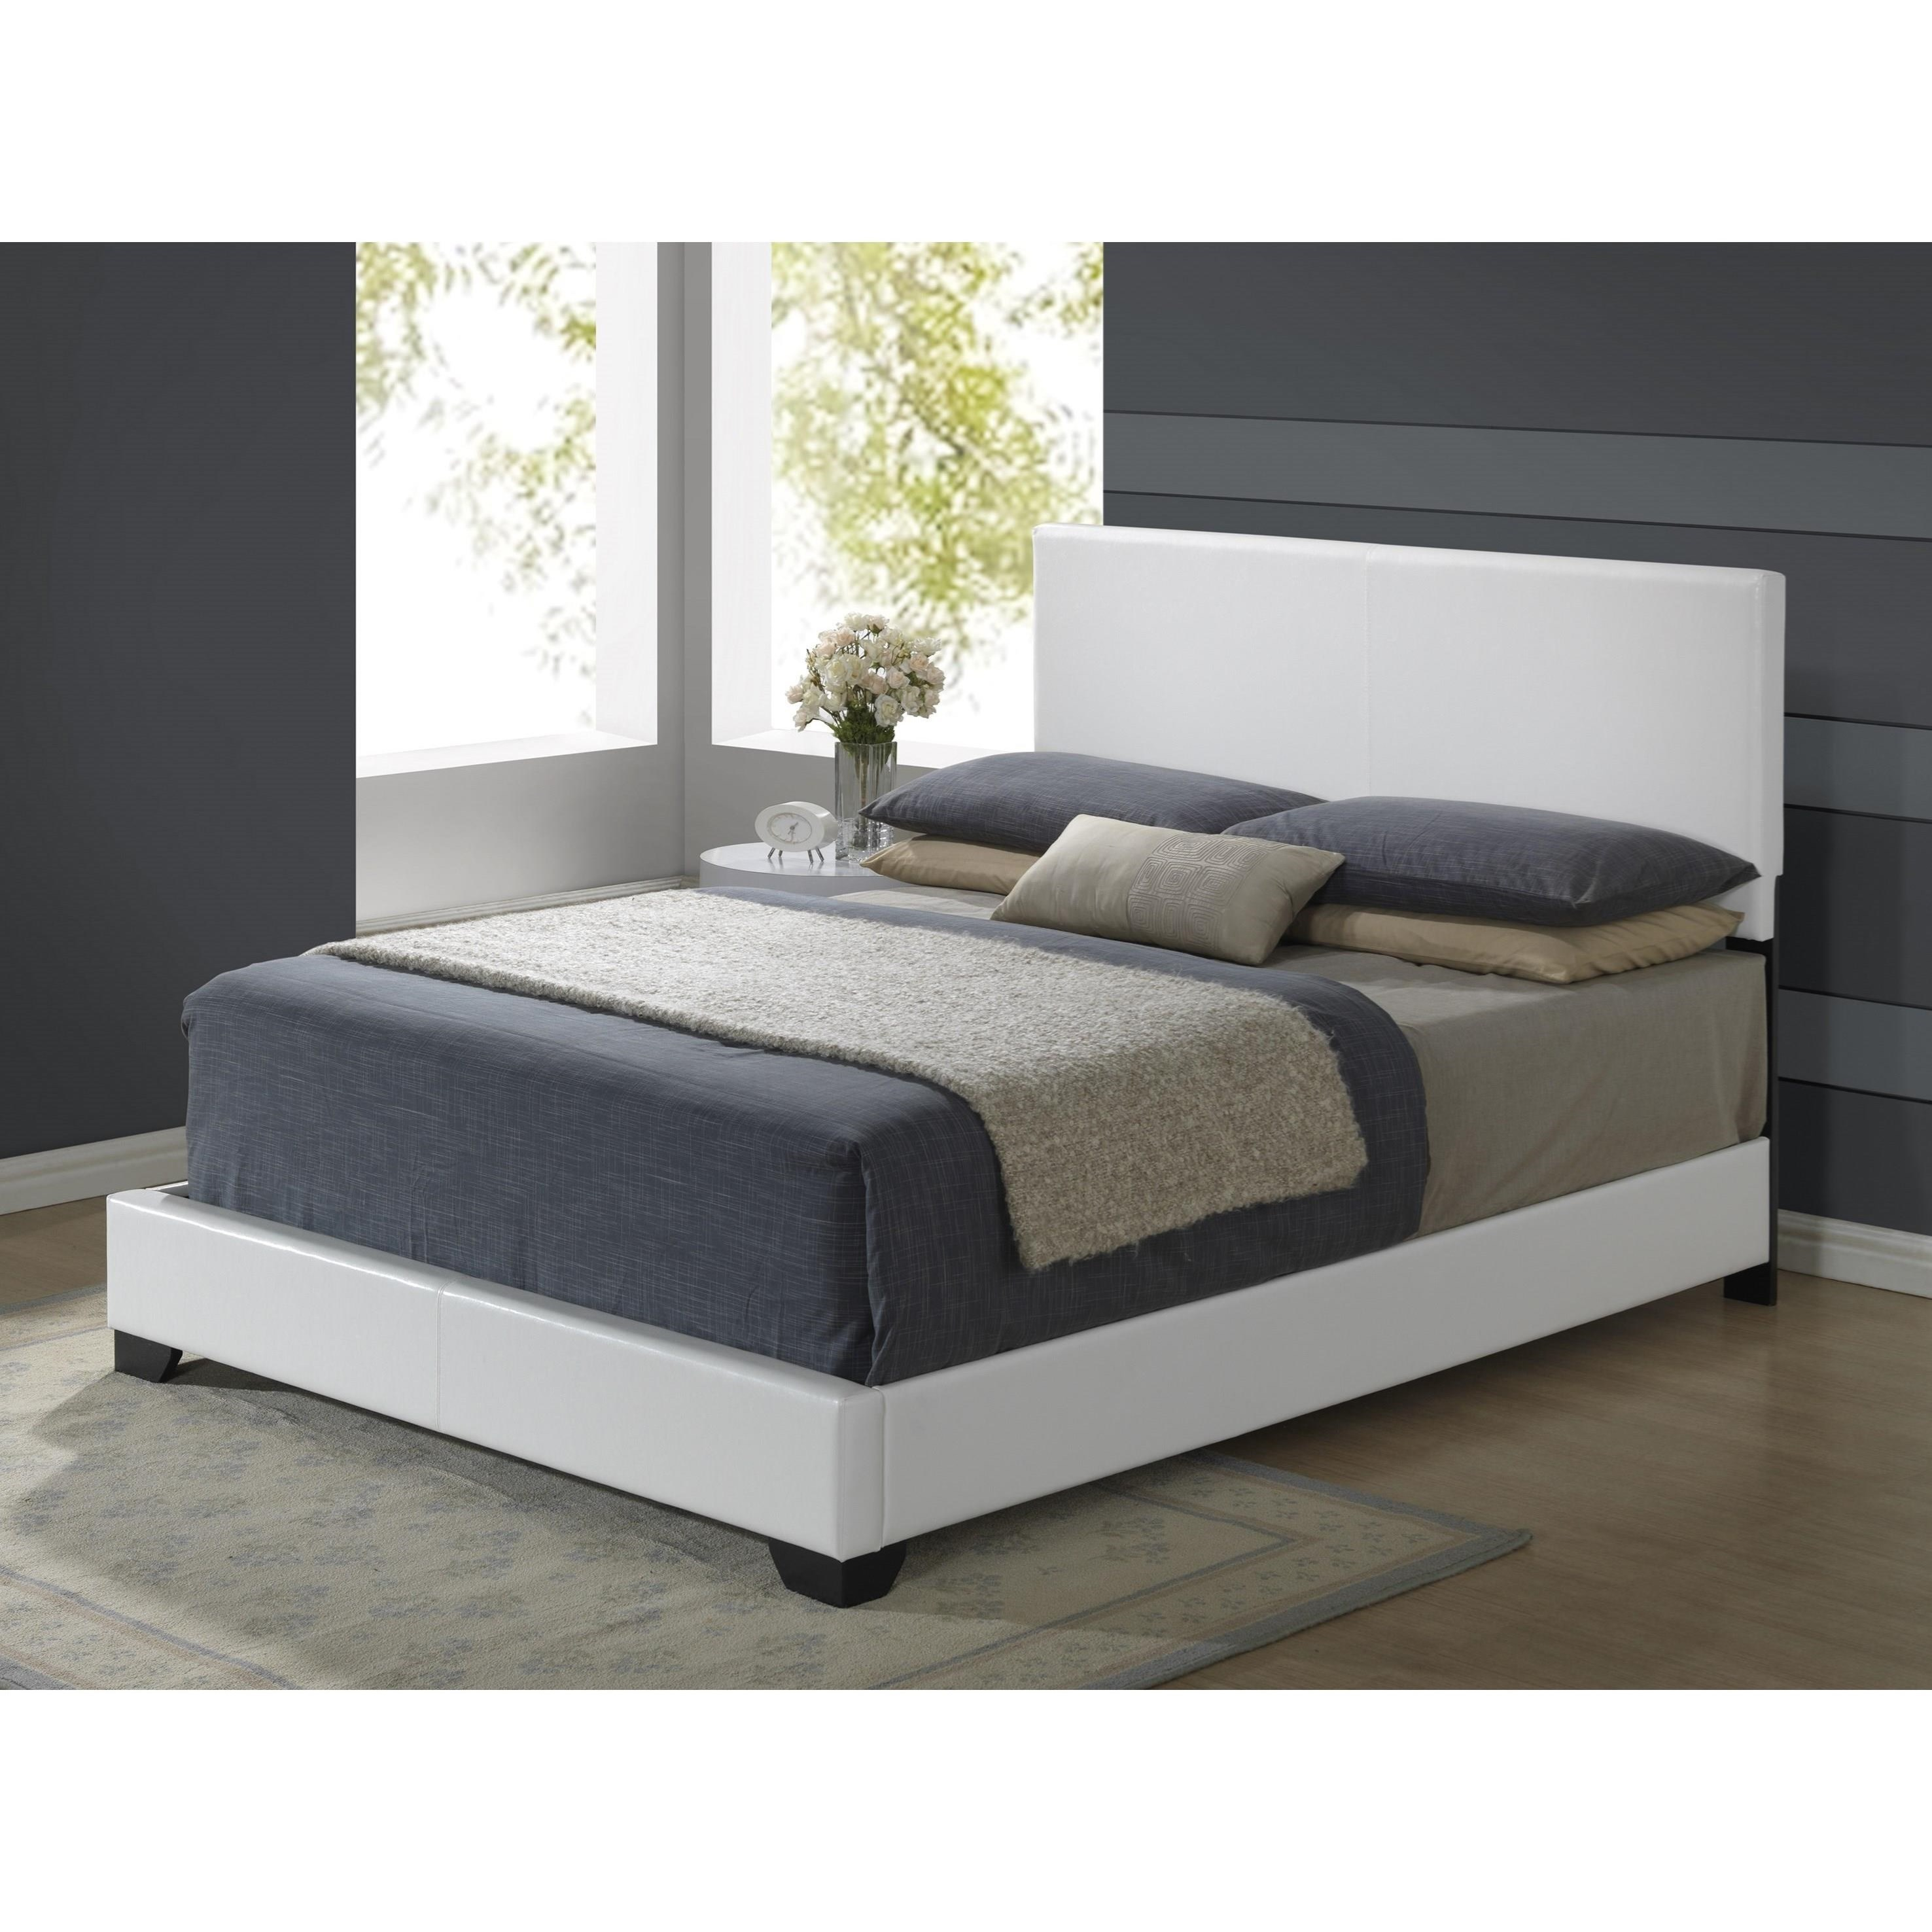 8103 Upholstered Queen Bed by Global Furniture at Value City Furniture